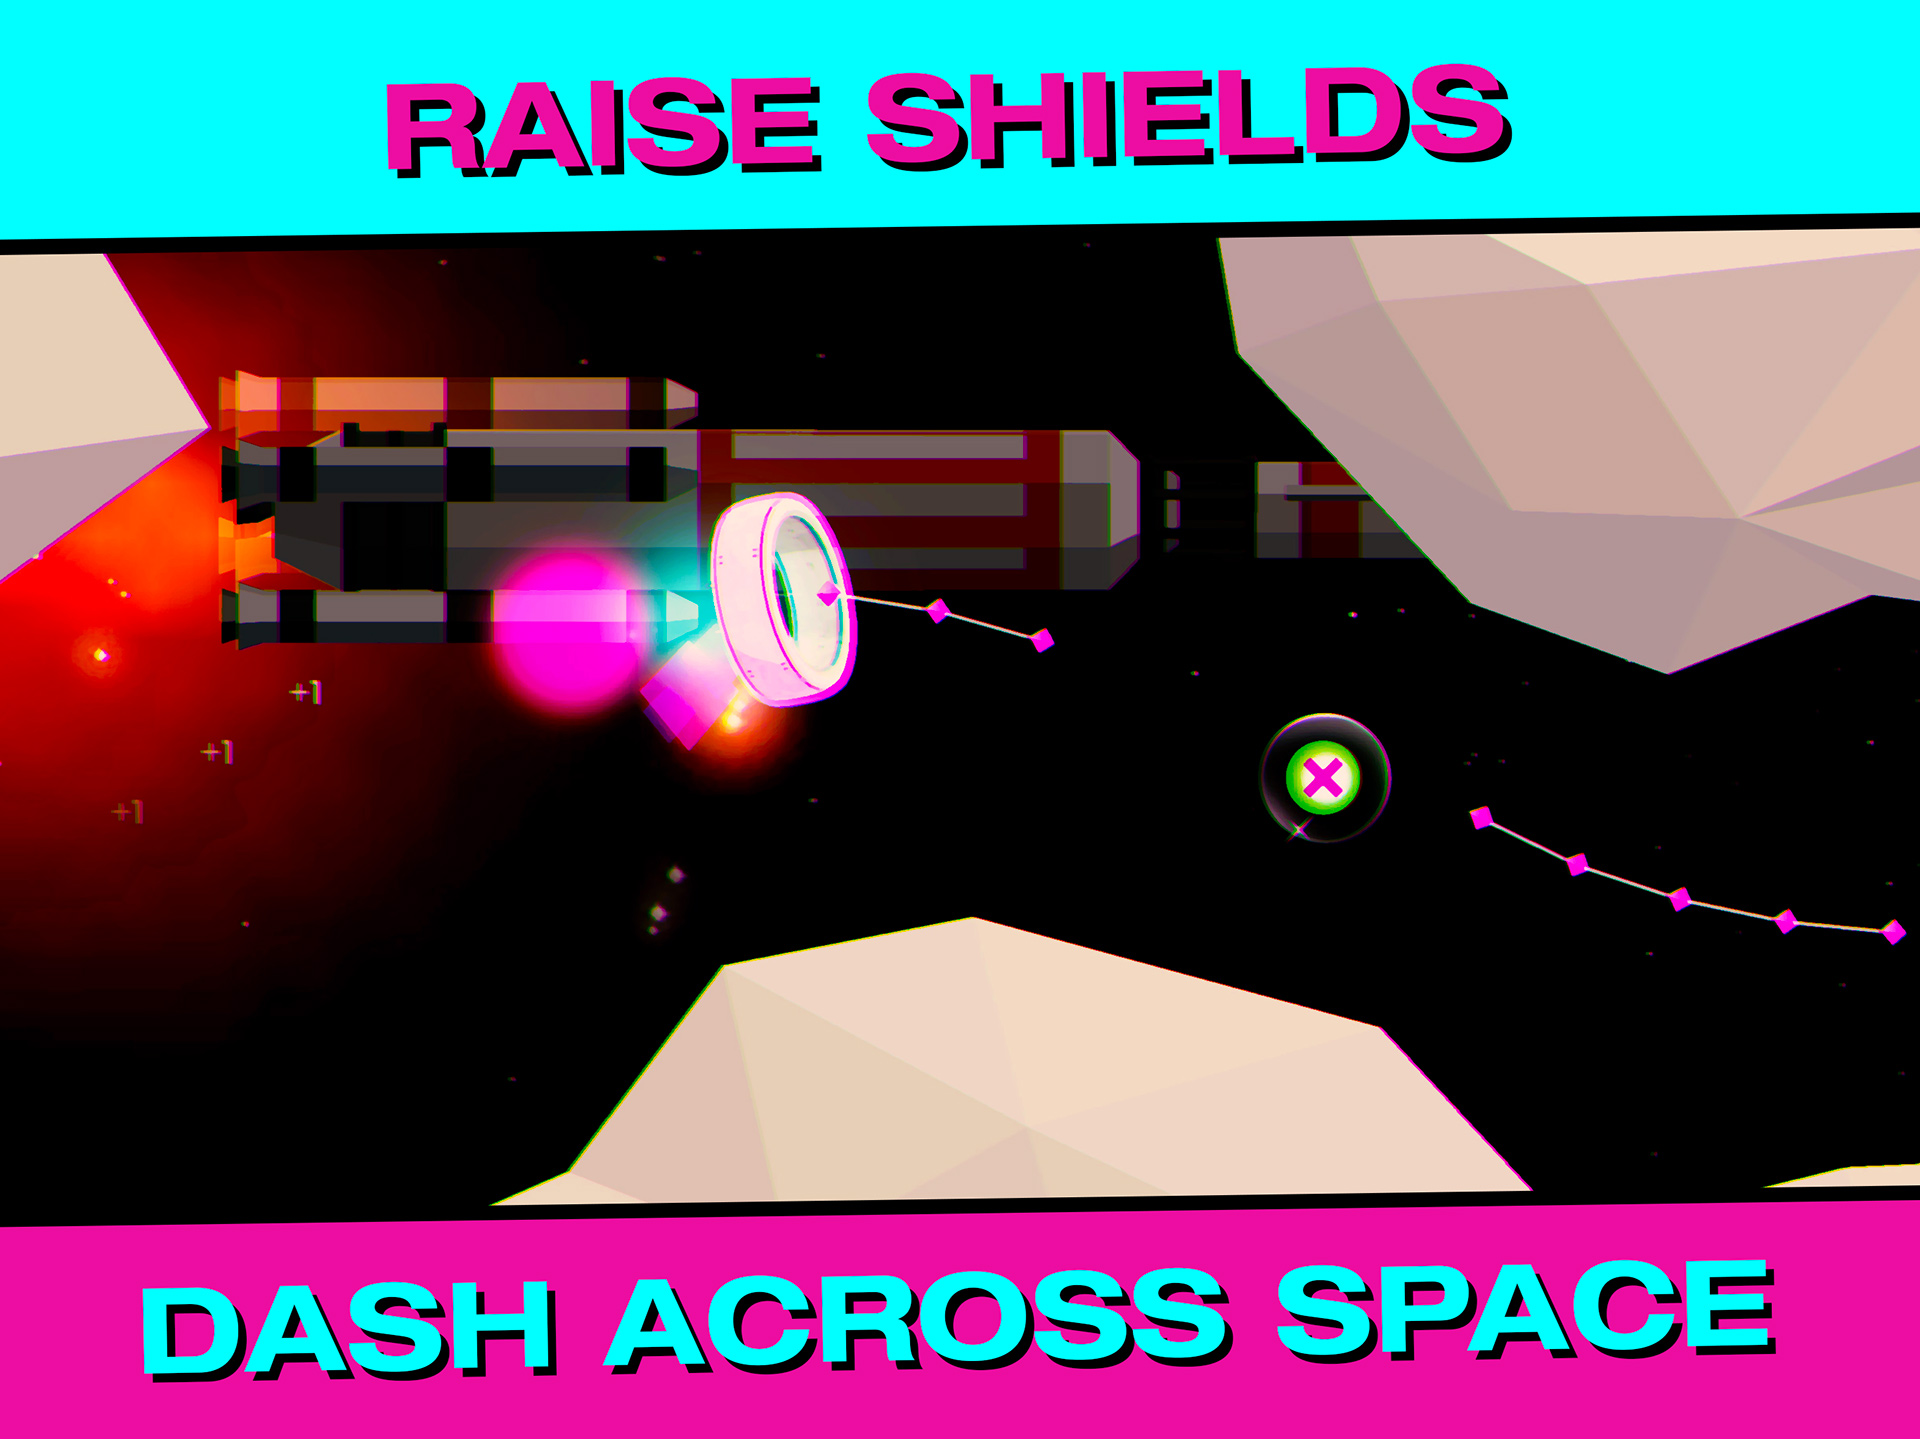 RAISE SHIELDS, DASH ACROSS SPACE